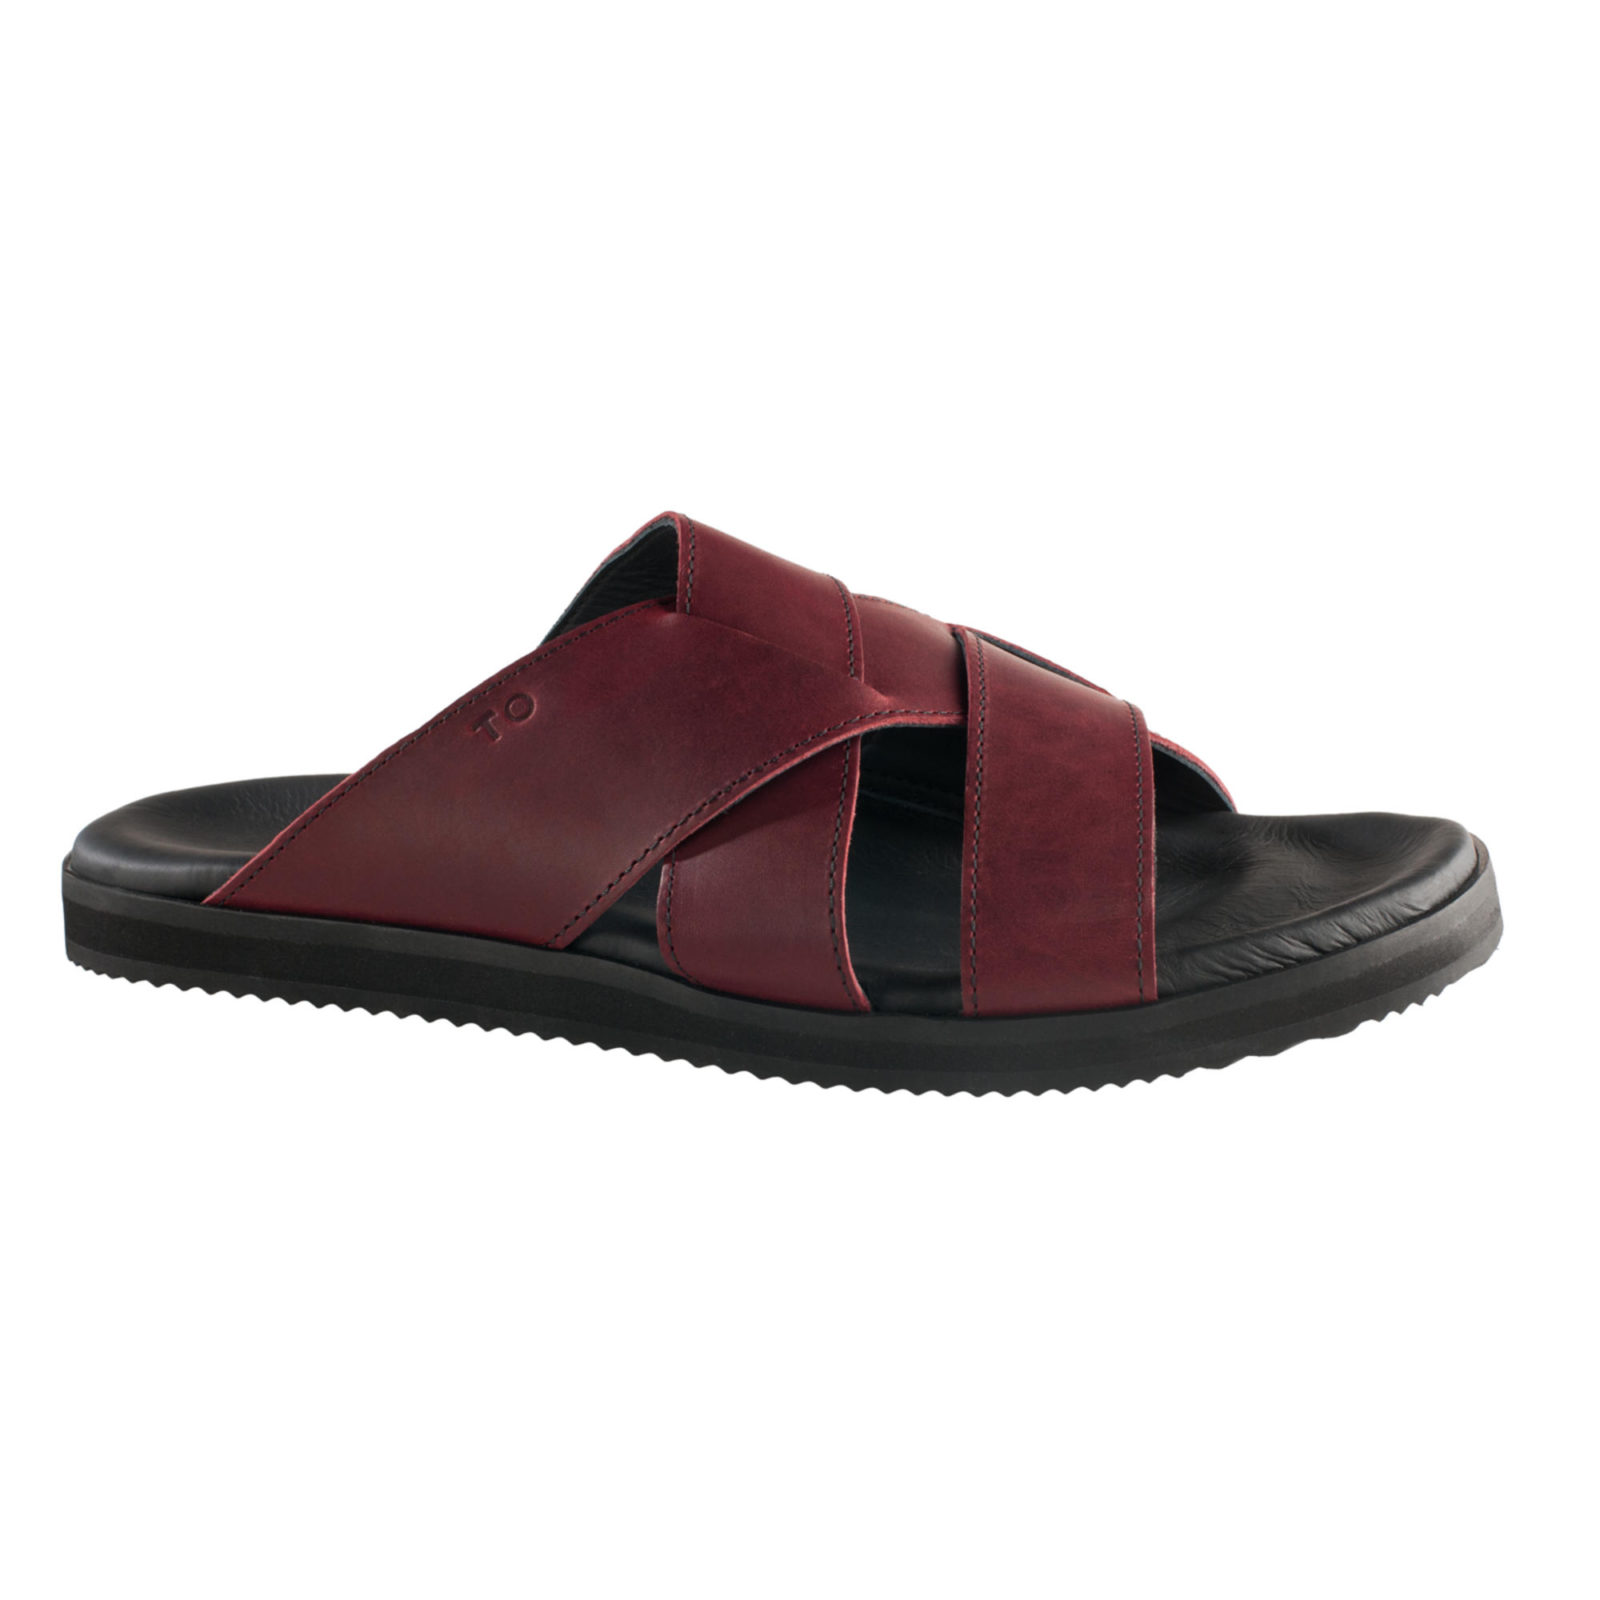 TOKU Helsinki for him bordeaux leather shoes